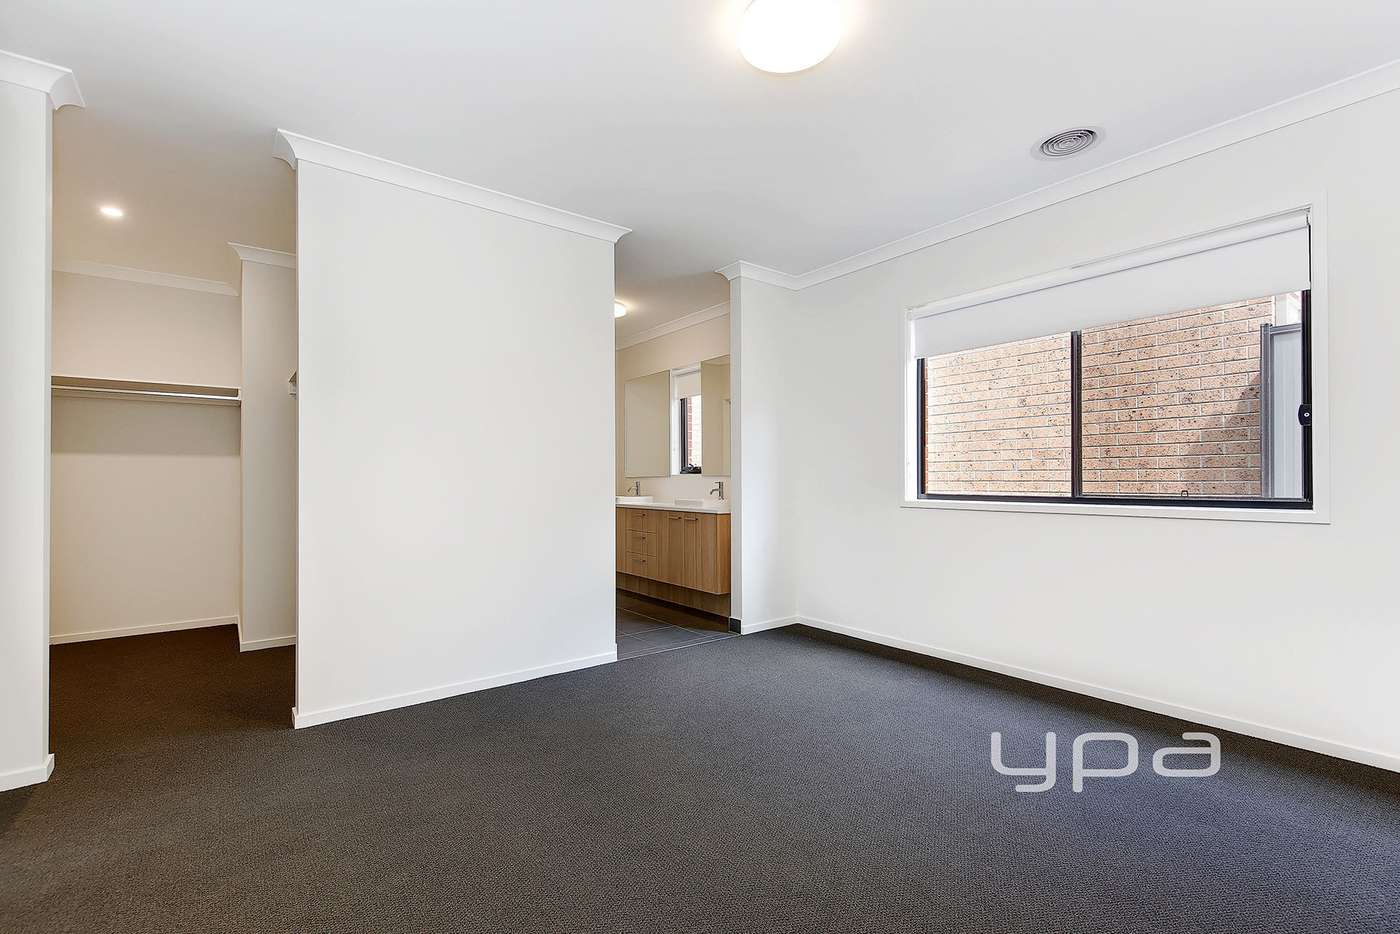 Seventh view of Homely house listing, 10 Arcturus Drive, Kalkallo VIC 3064